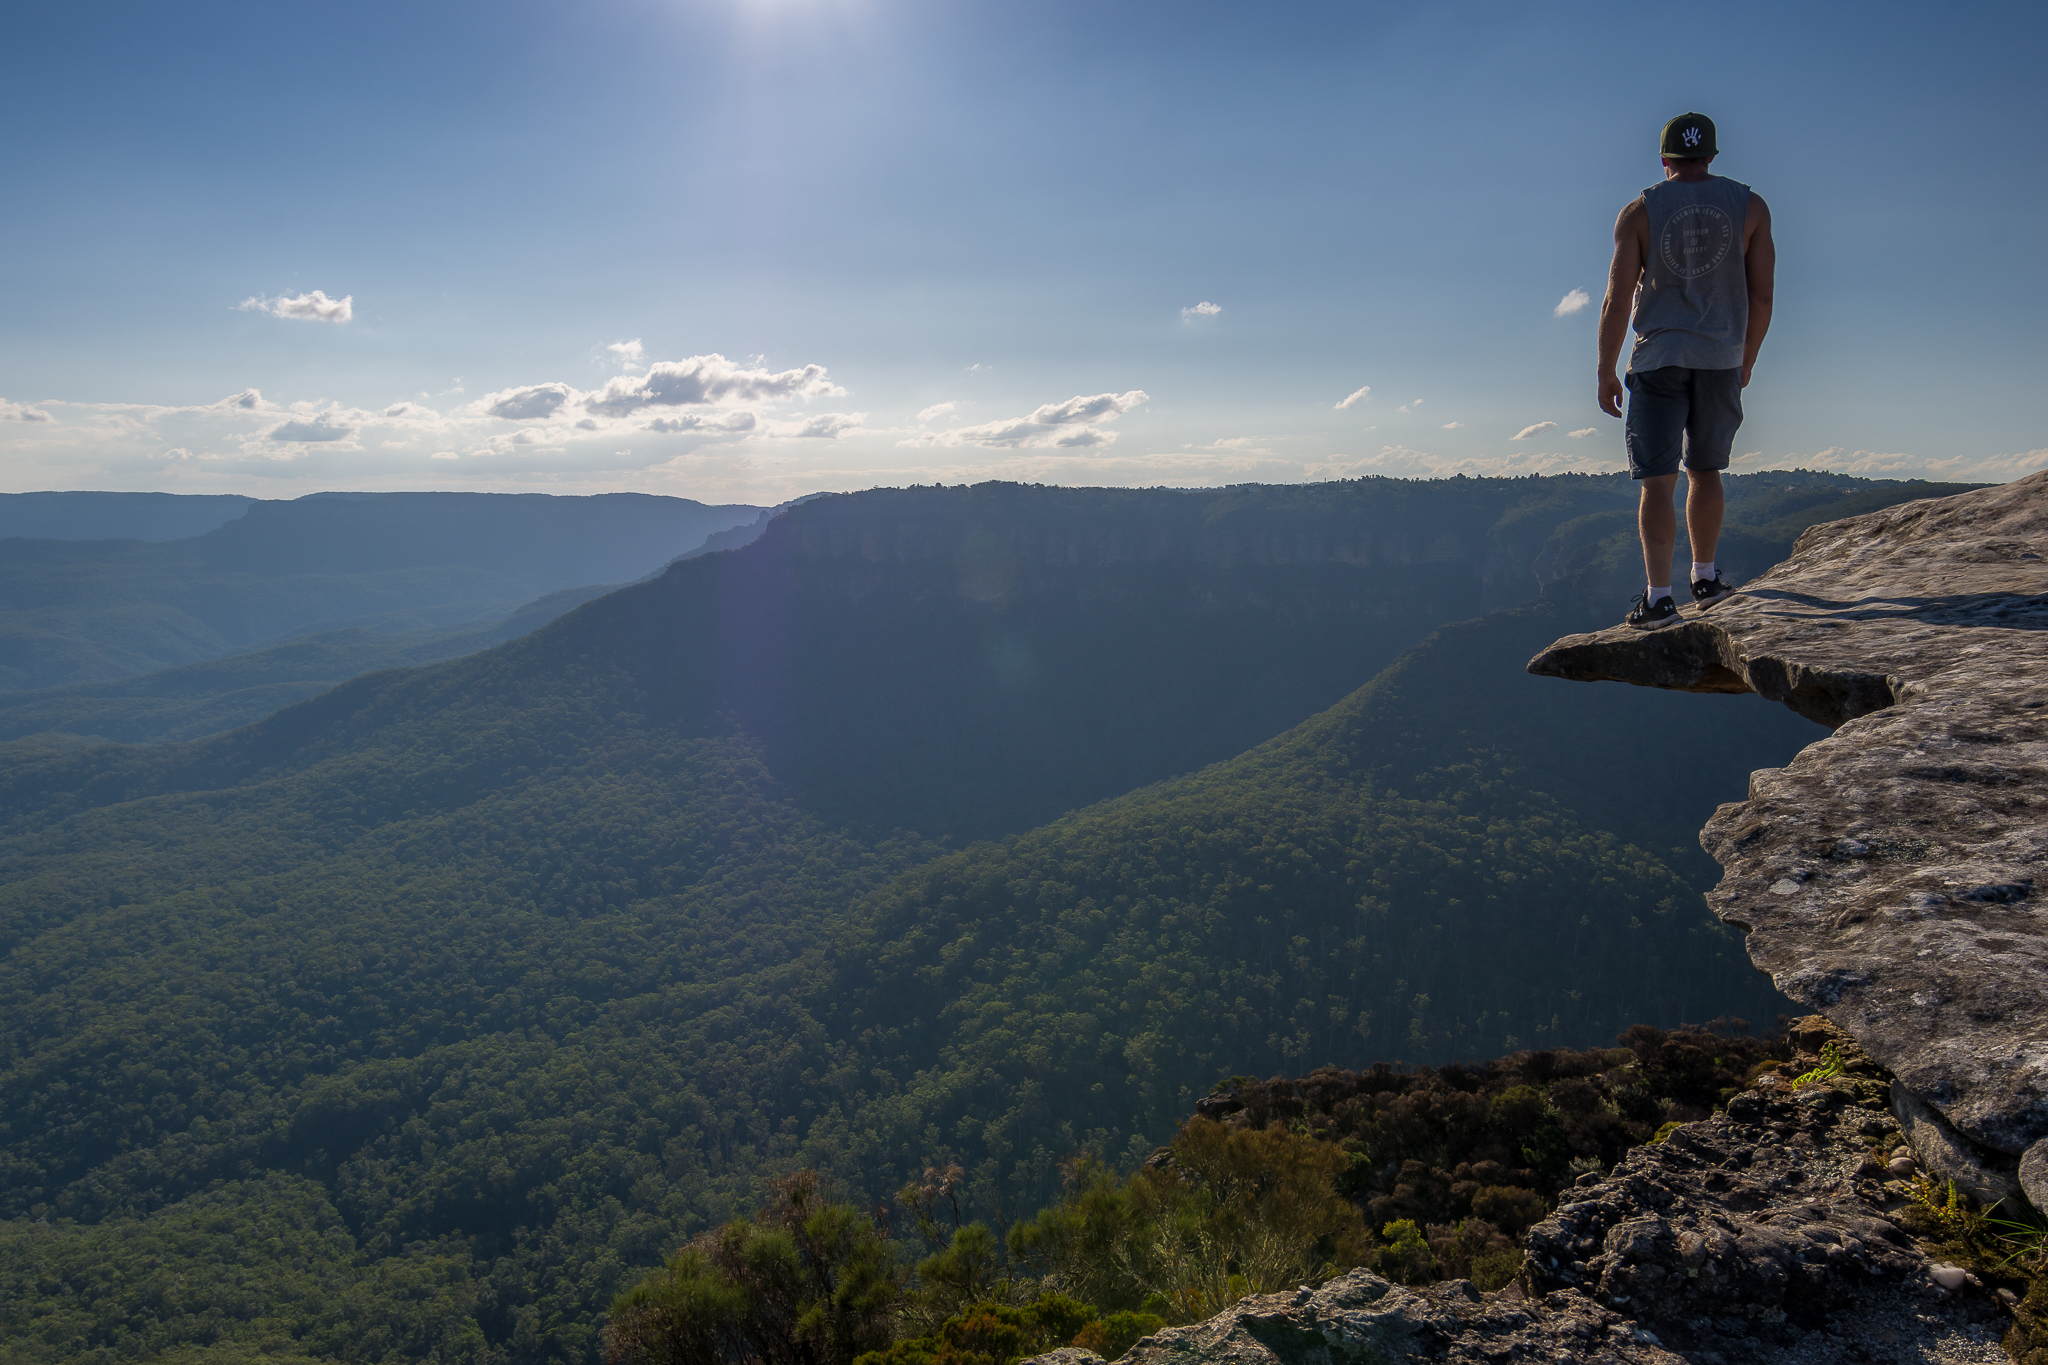 kris penn blue mountains sydney new south wales australia thisworldexists this world exists